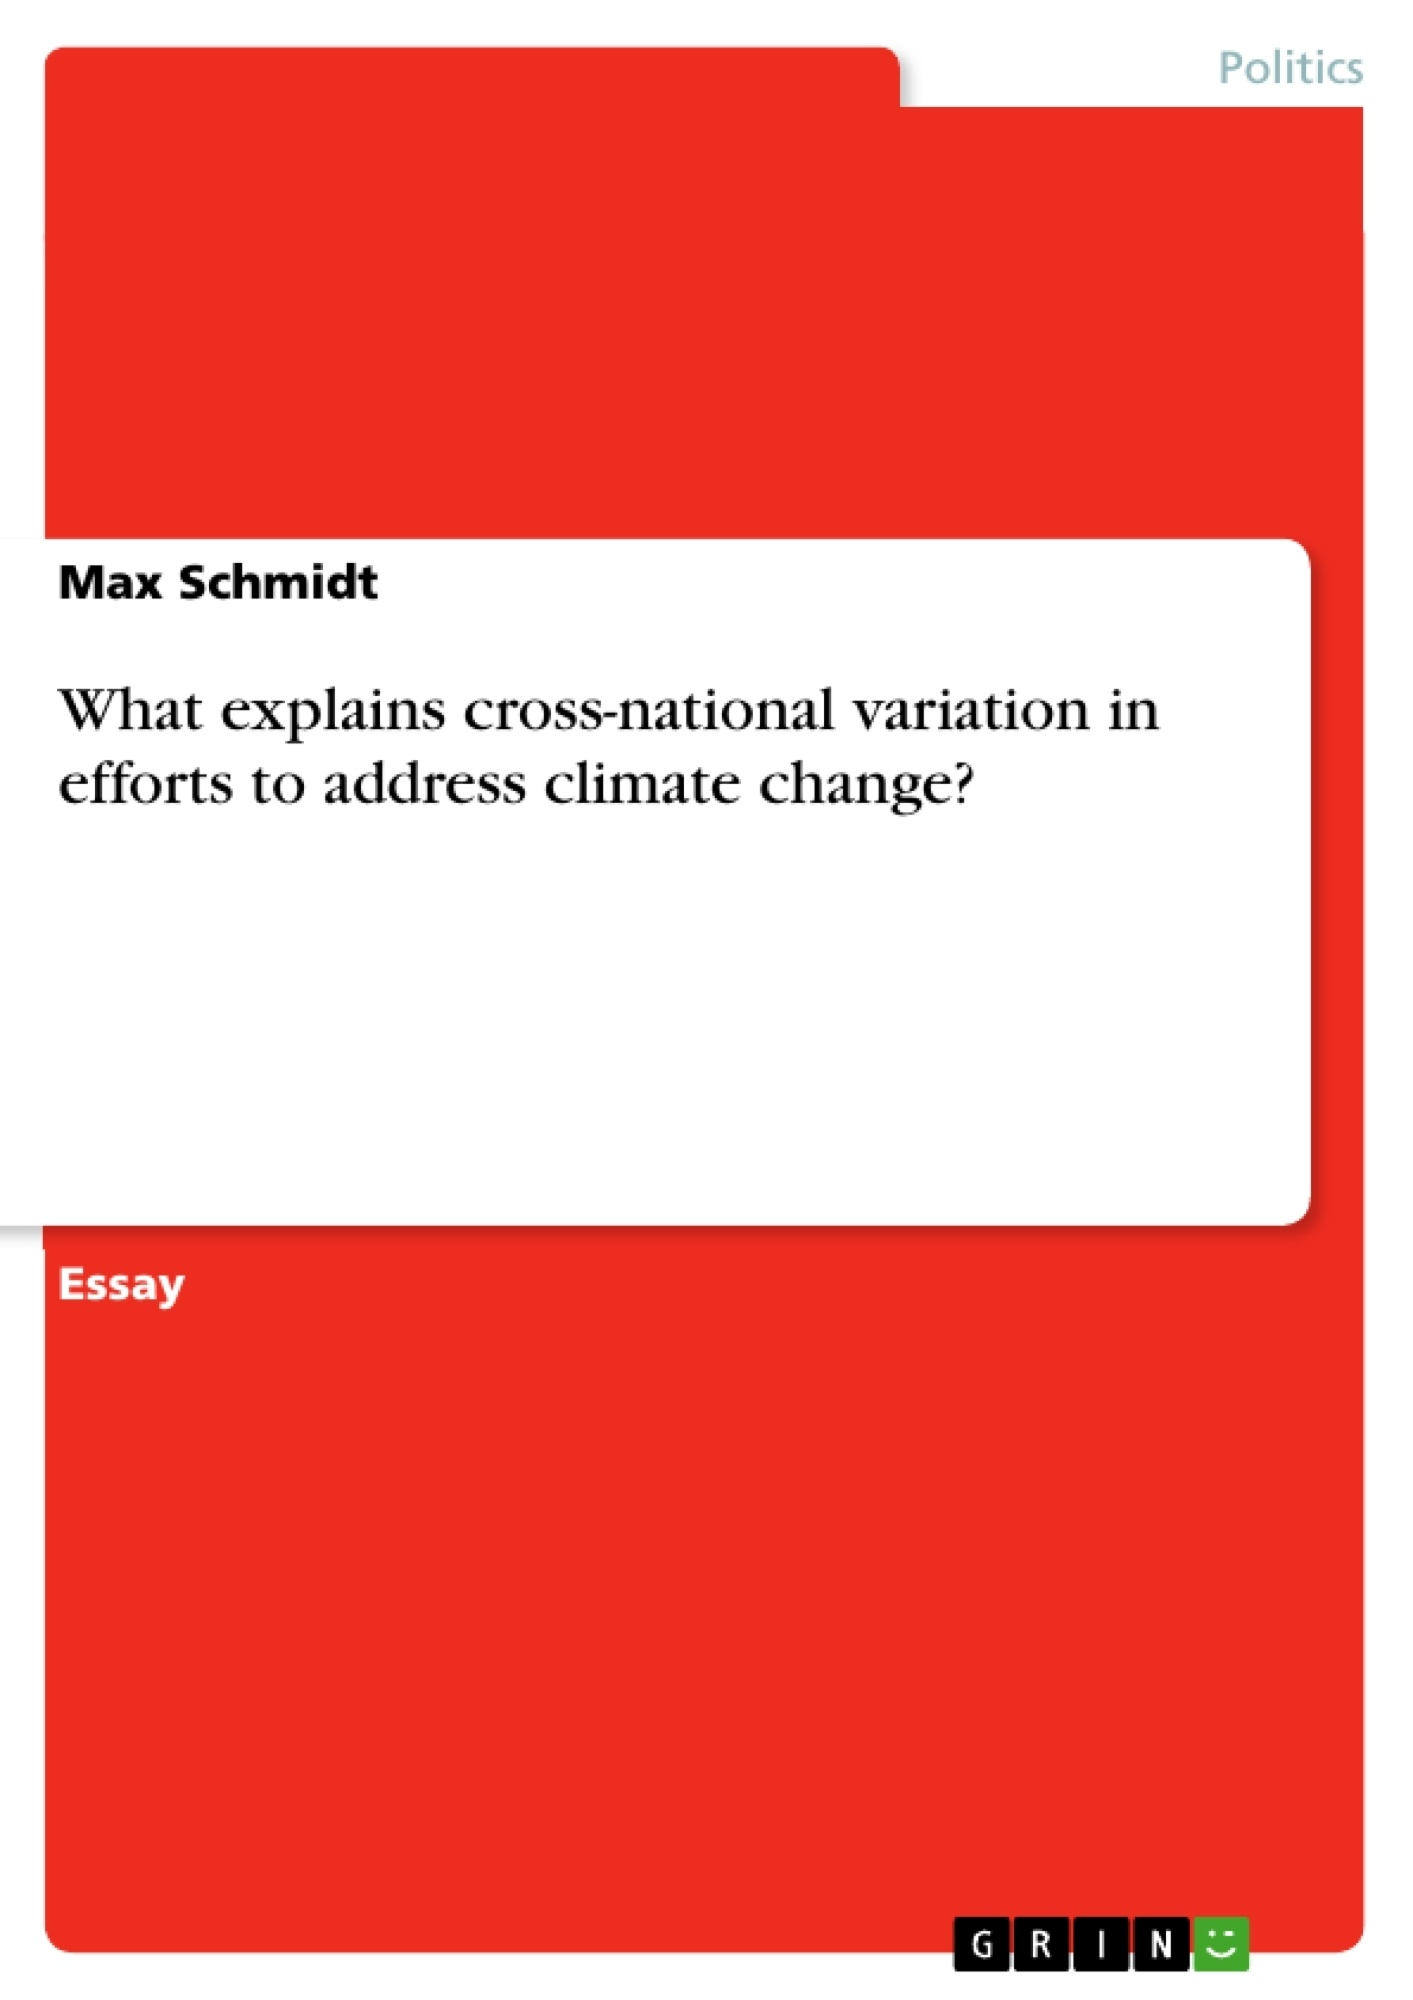 Title: What explains cross-national variation in efforts to address climate change?